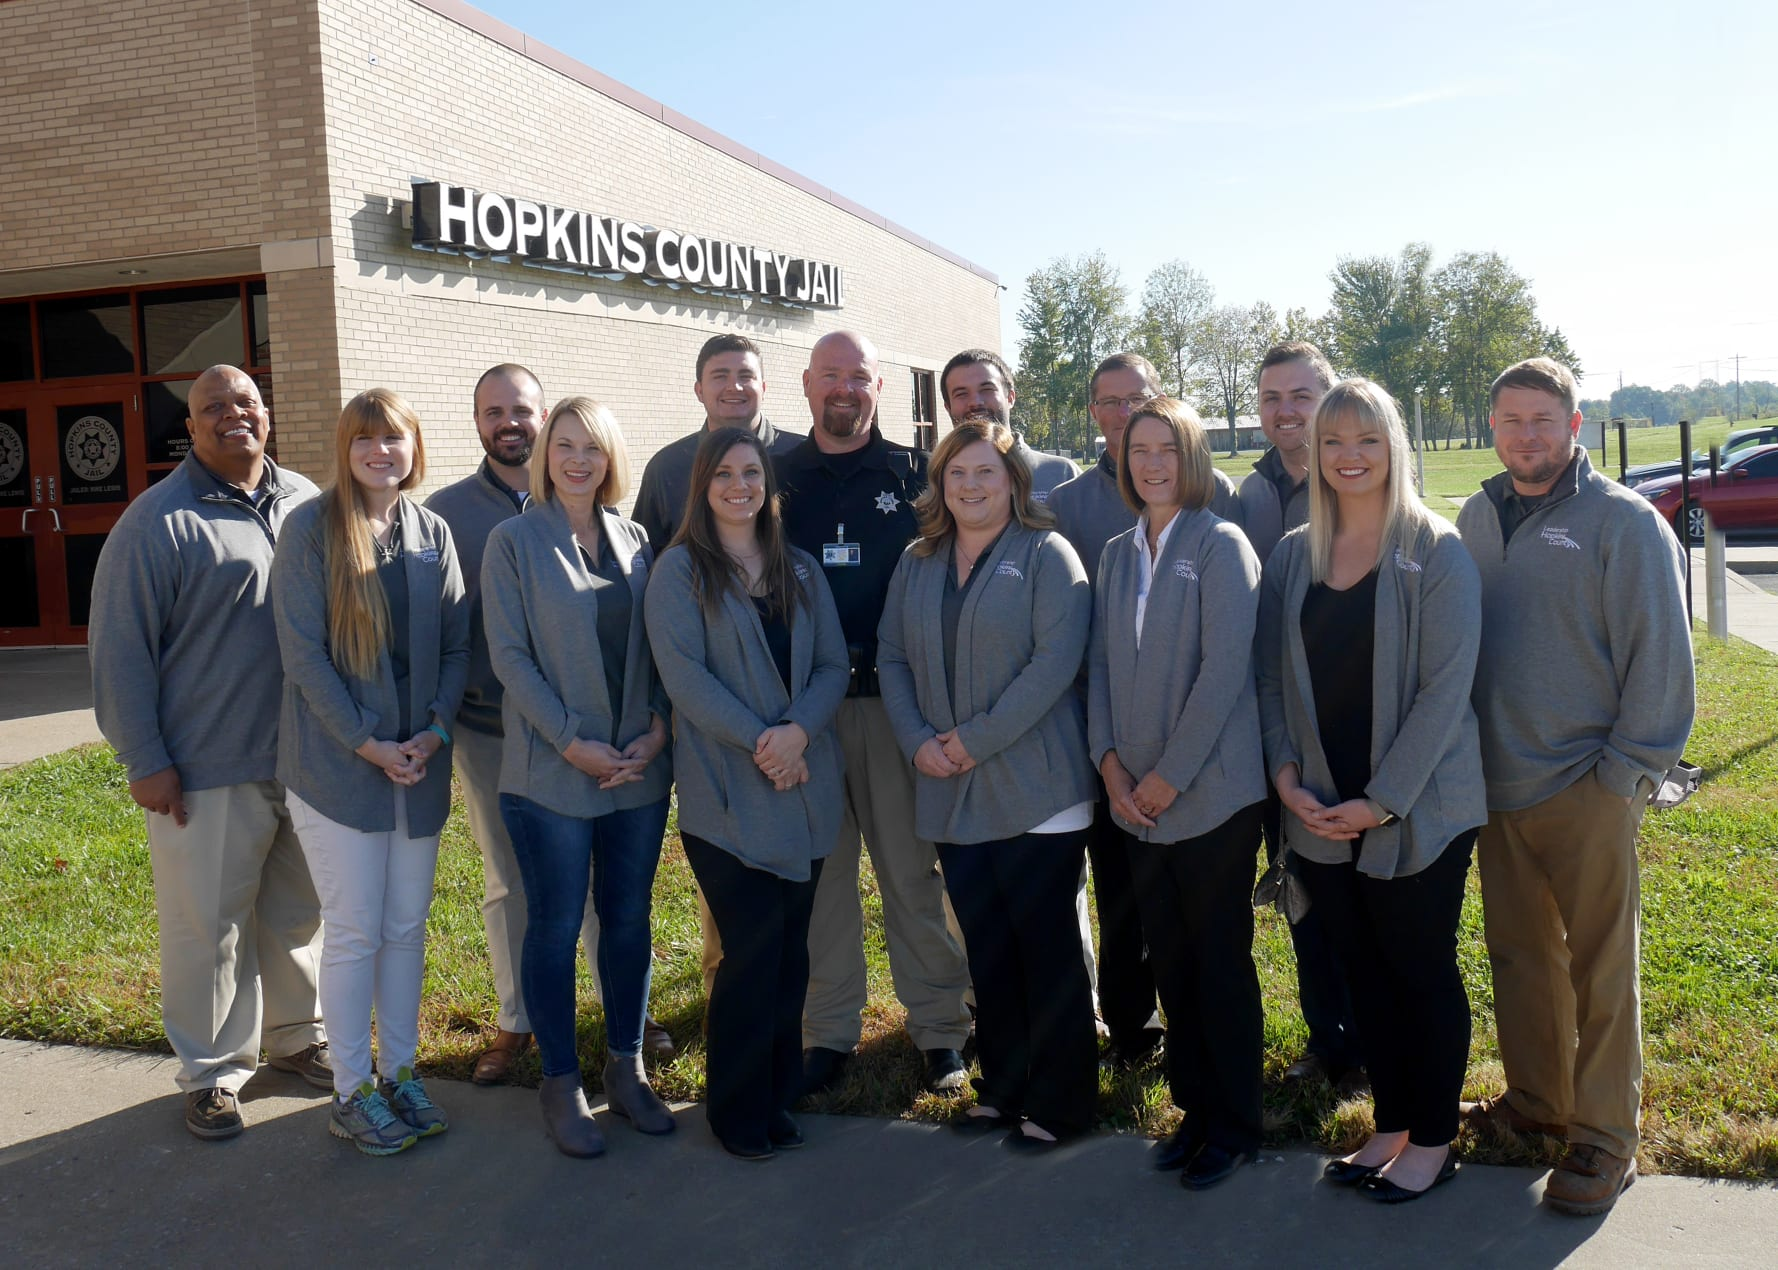 Leadership Hopkins County